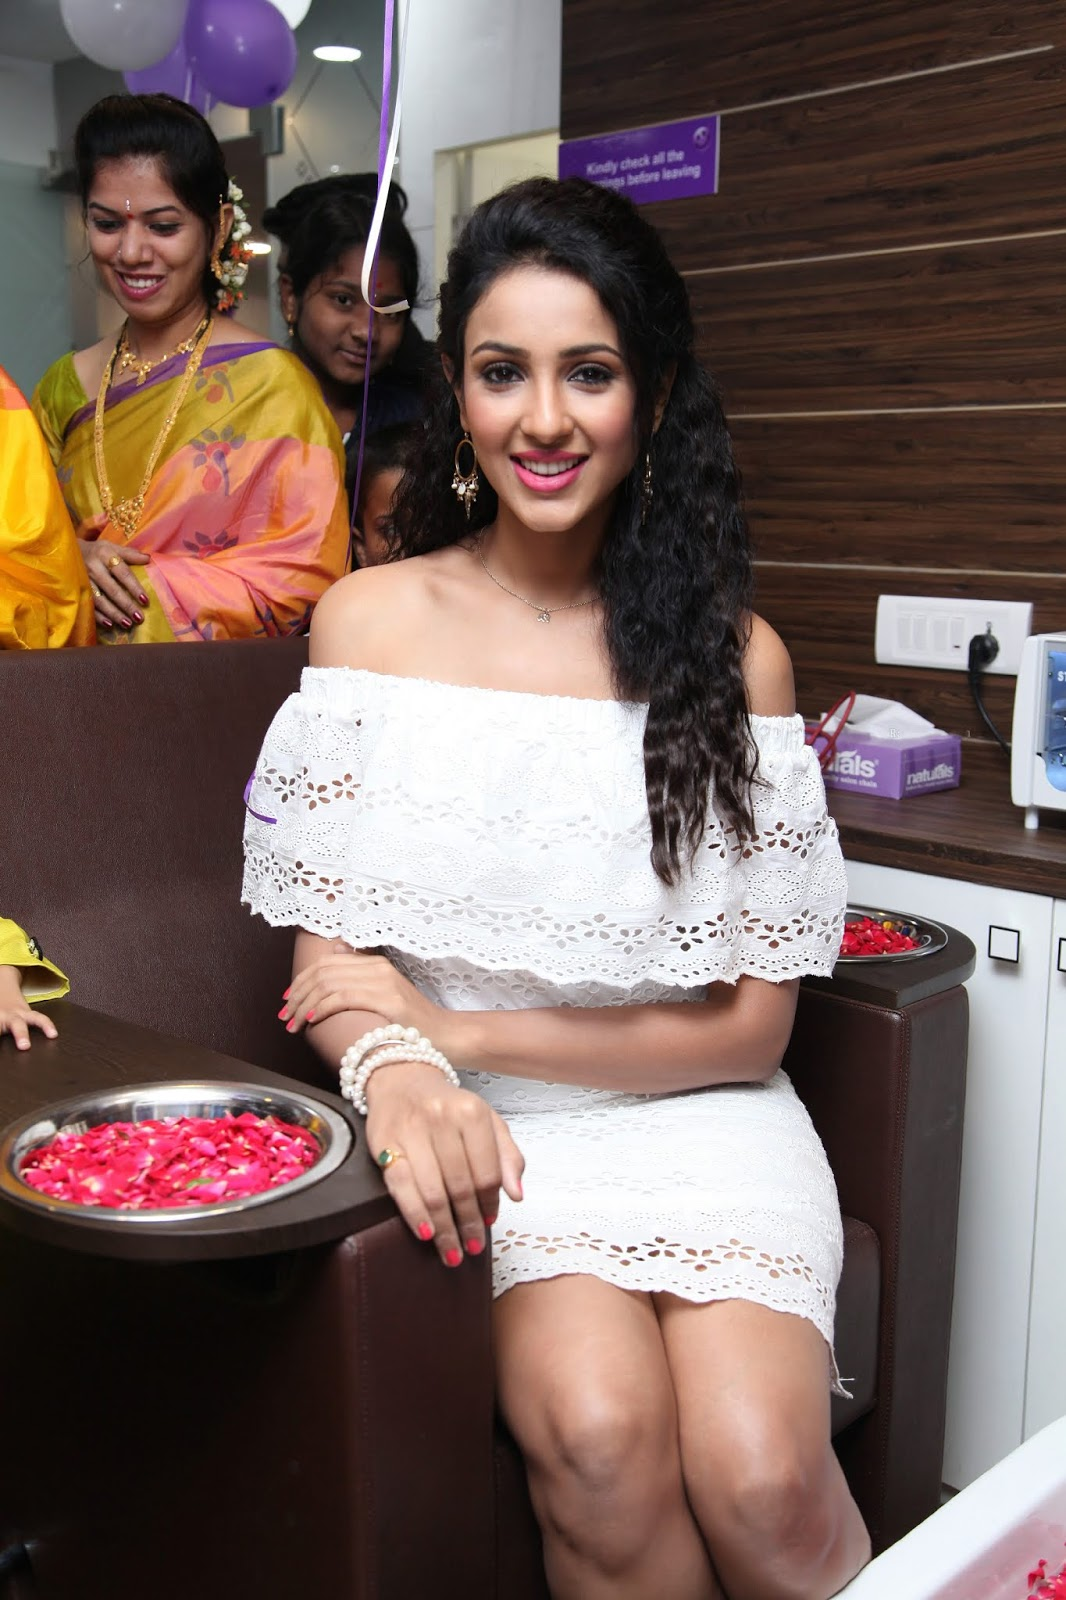 Priyashri Displaying Her Milky Thighs In White Short Outfit At Public Meeting